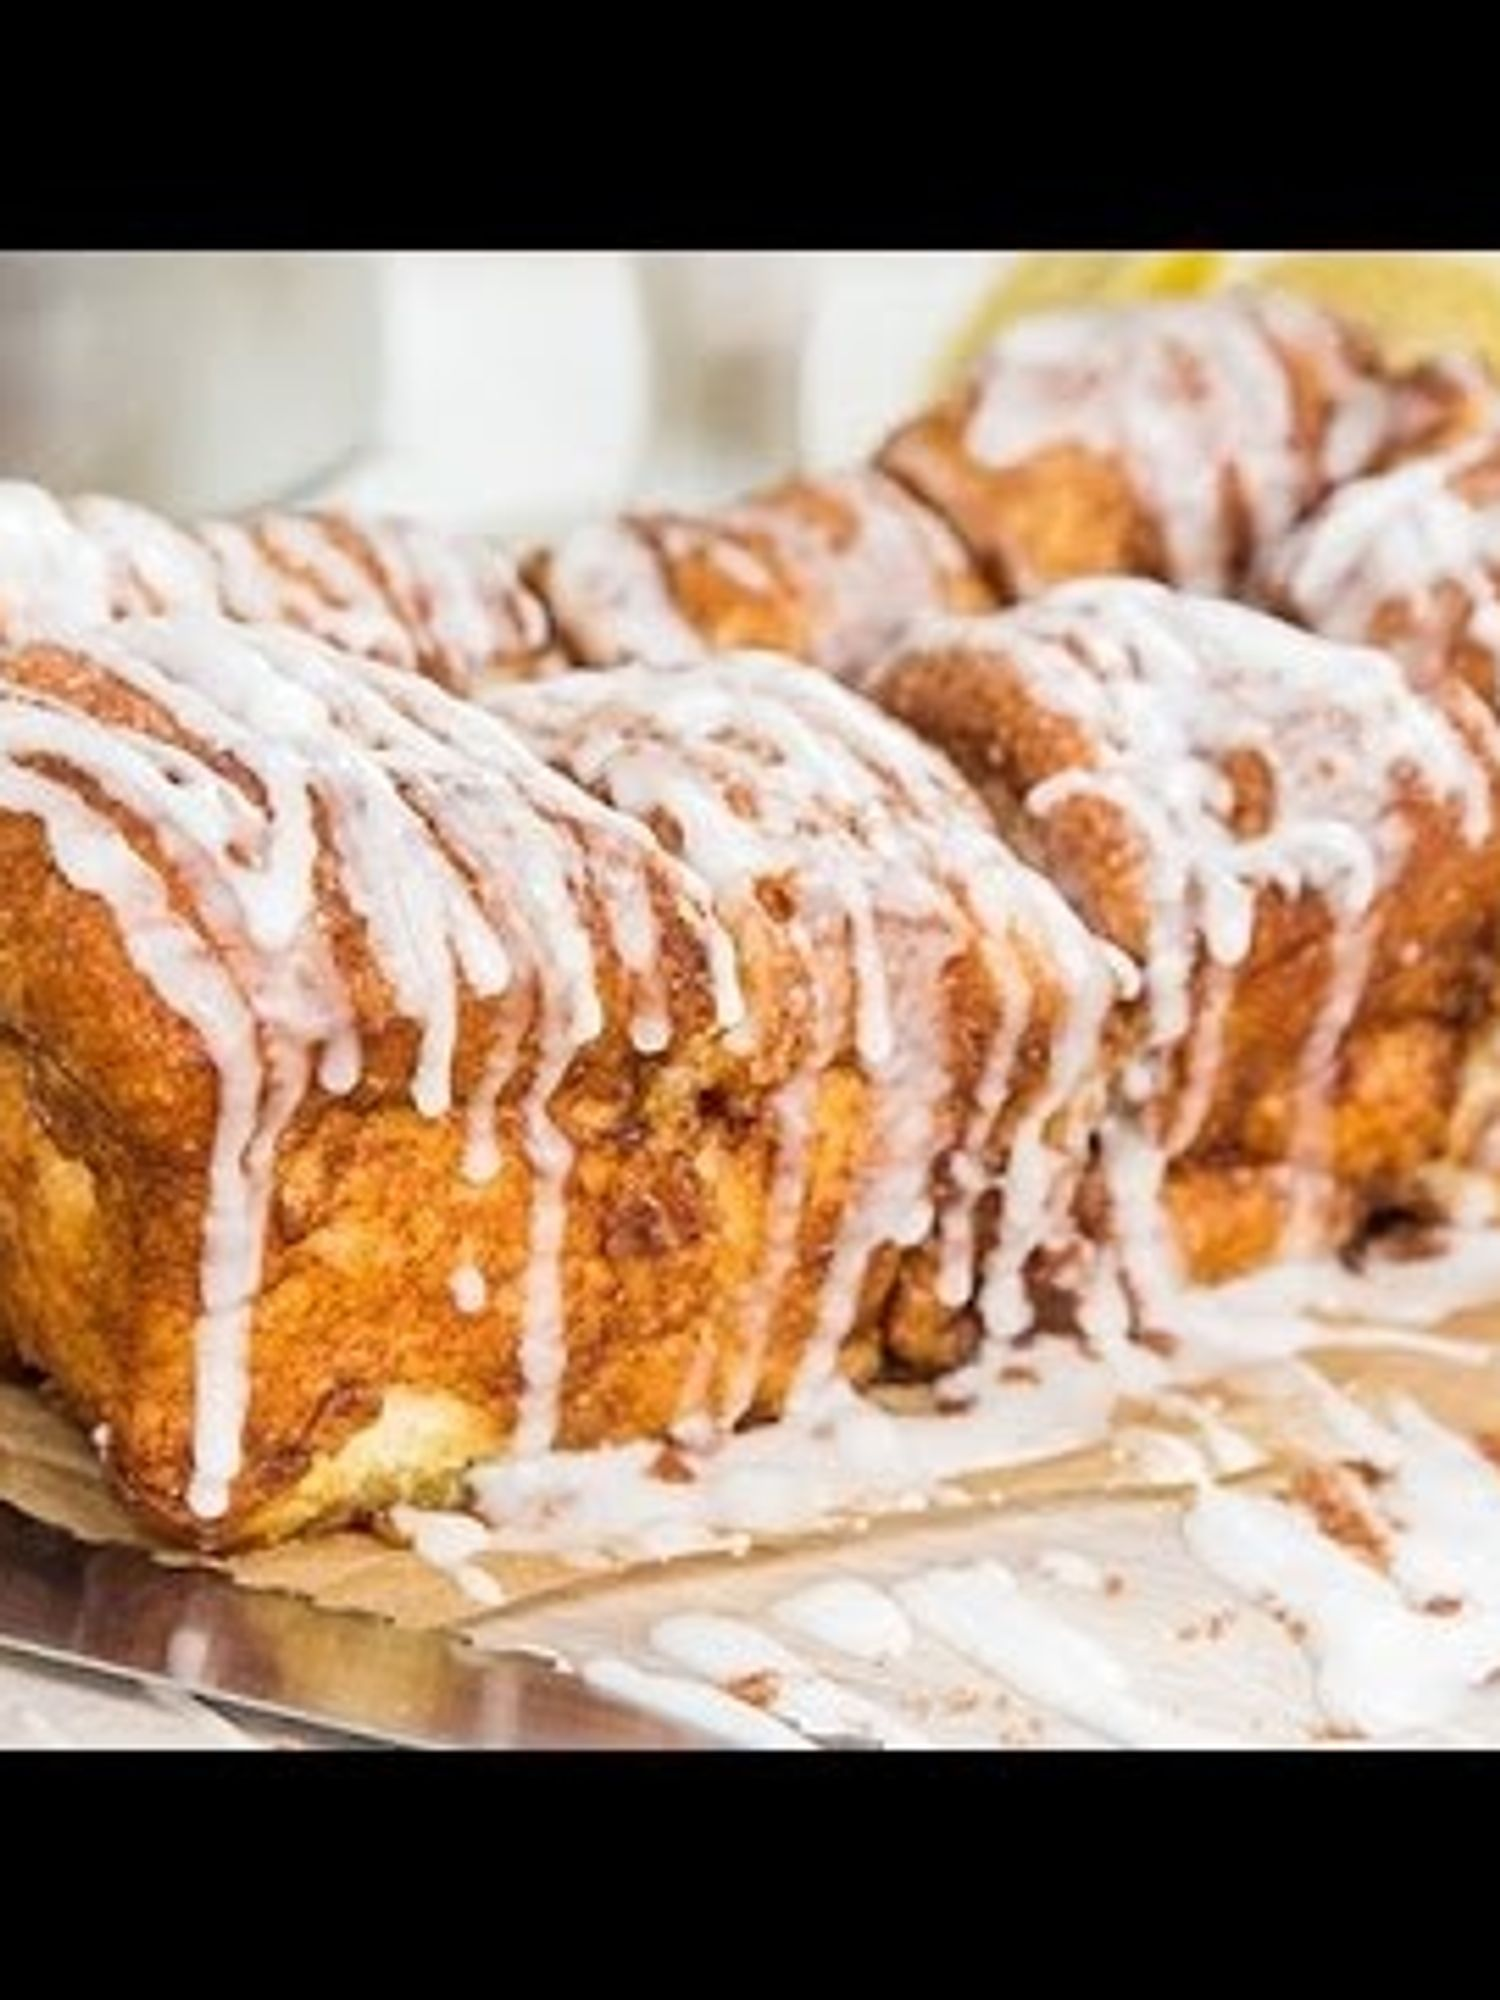 You Can Make Dollywood S Famous Cinnamon Bread At Home Cinnamon Bread Recipe Cinnamon Bread Dessert Recipes